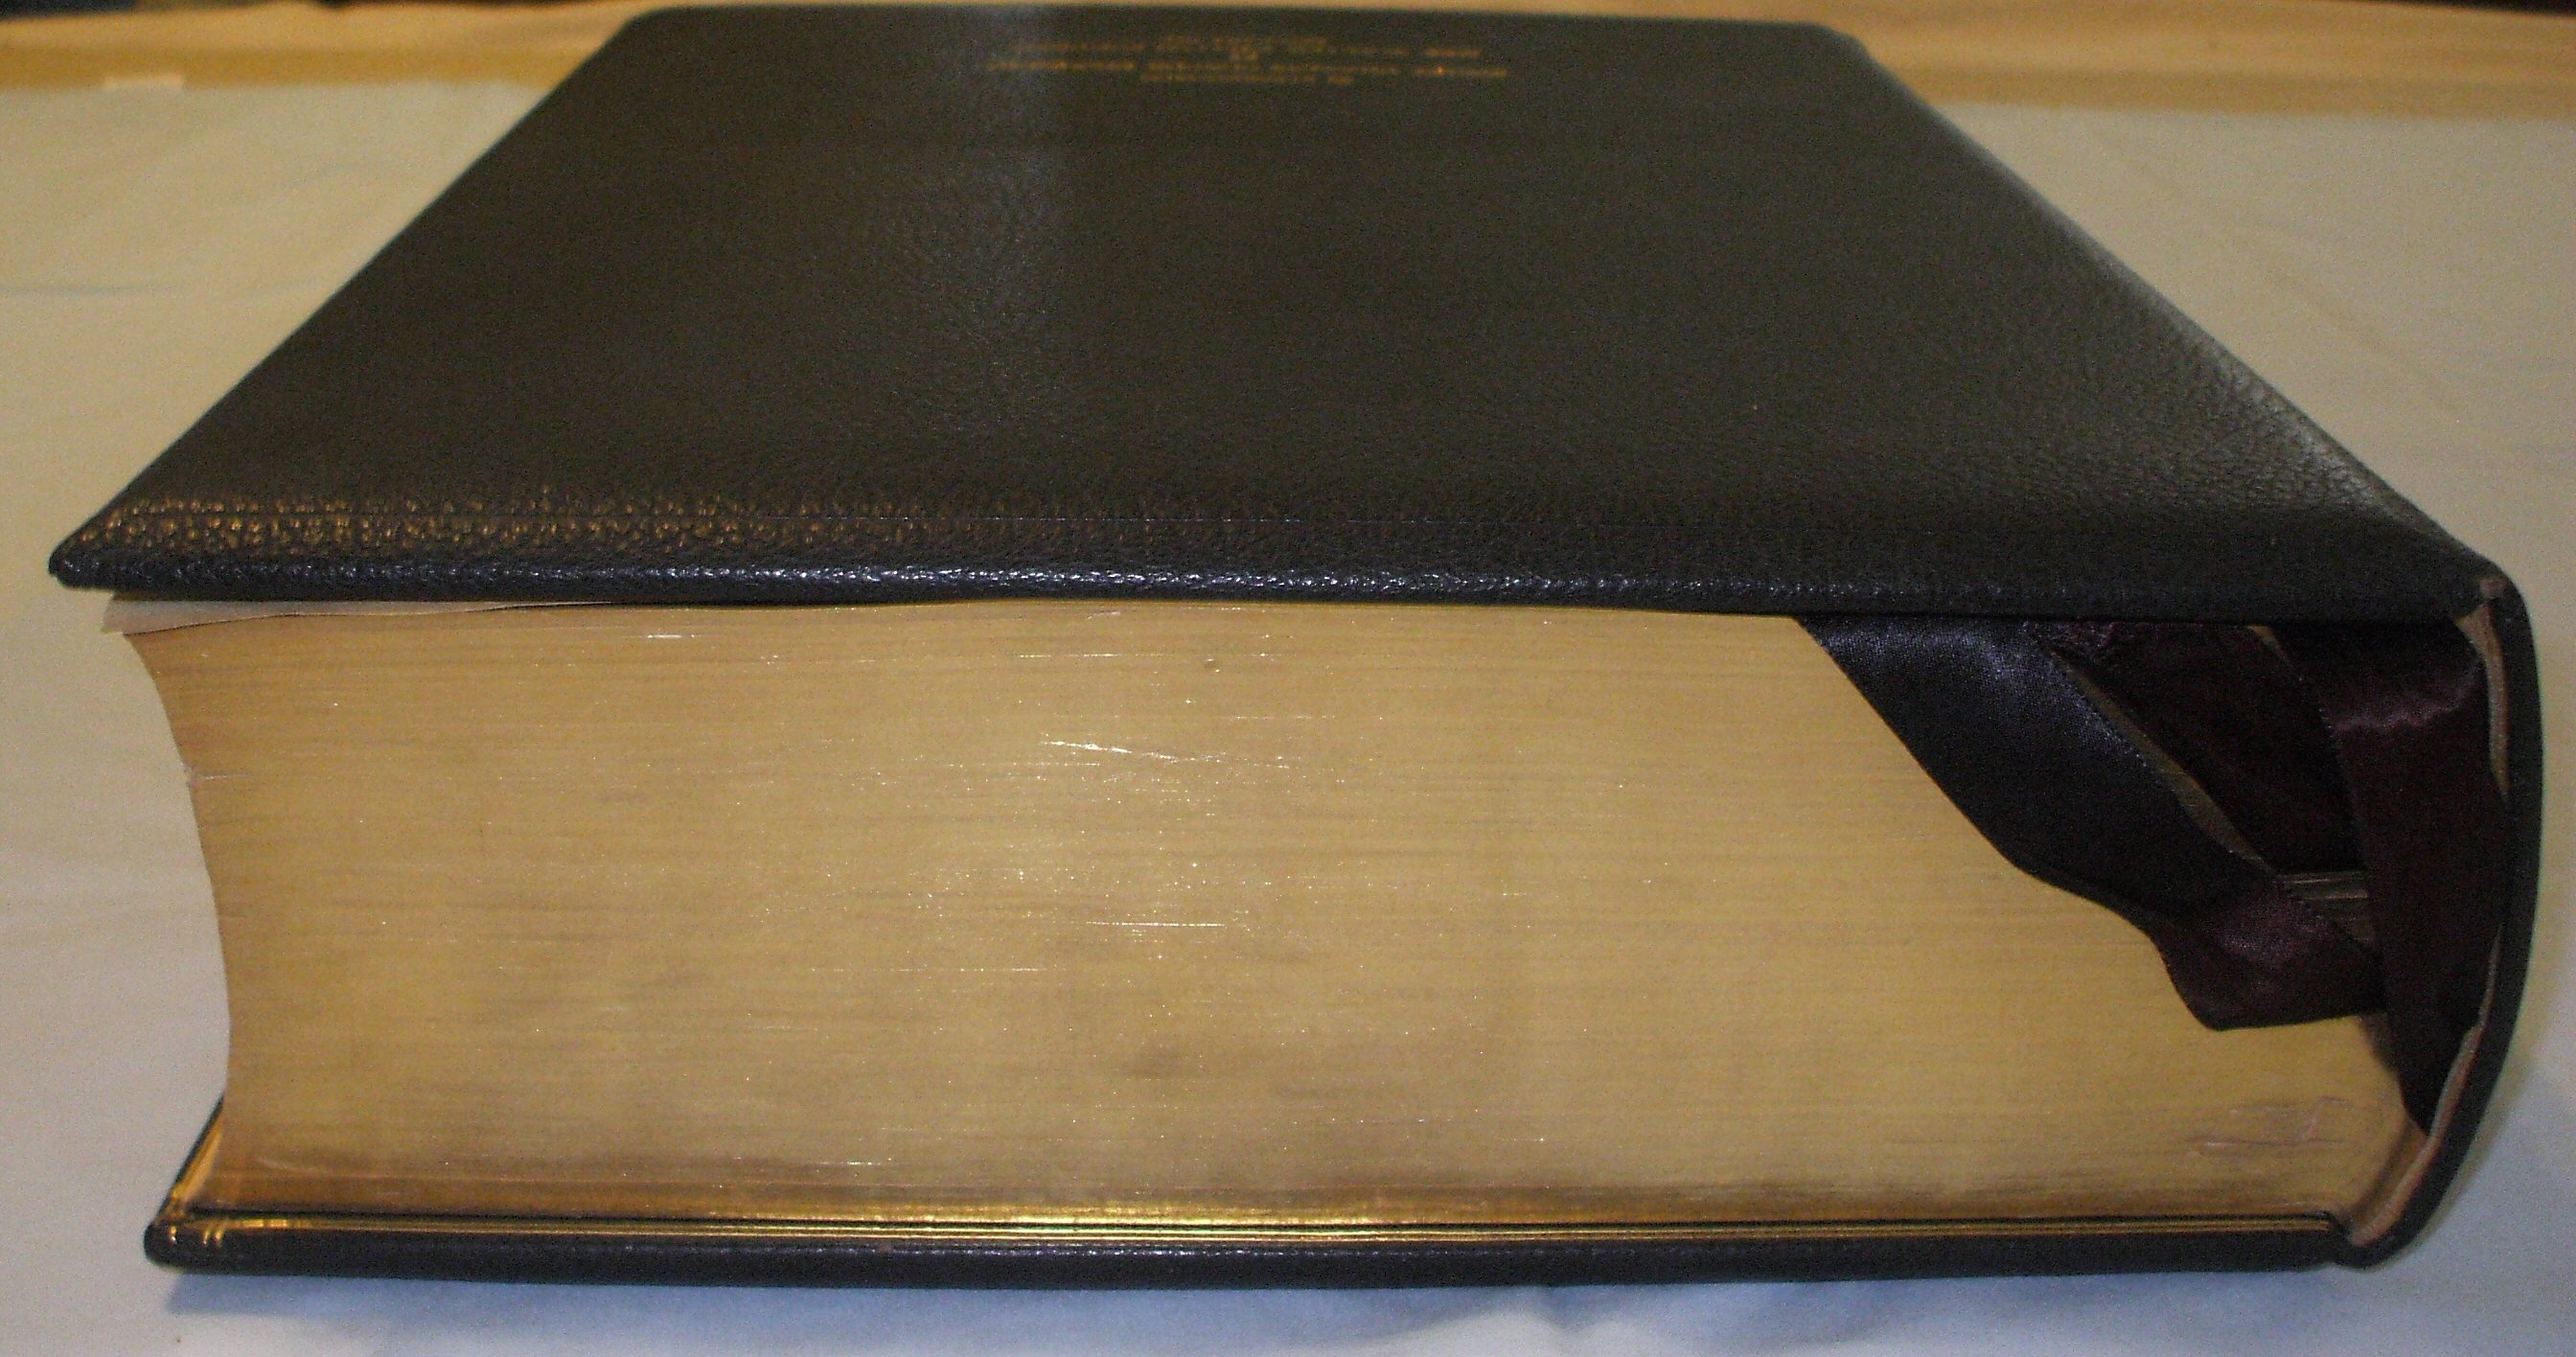 Oxford Letern Bible Top Edge